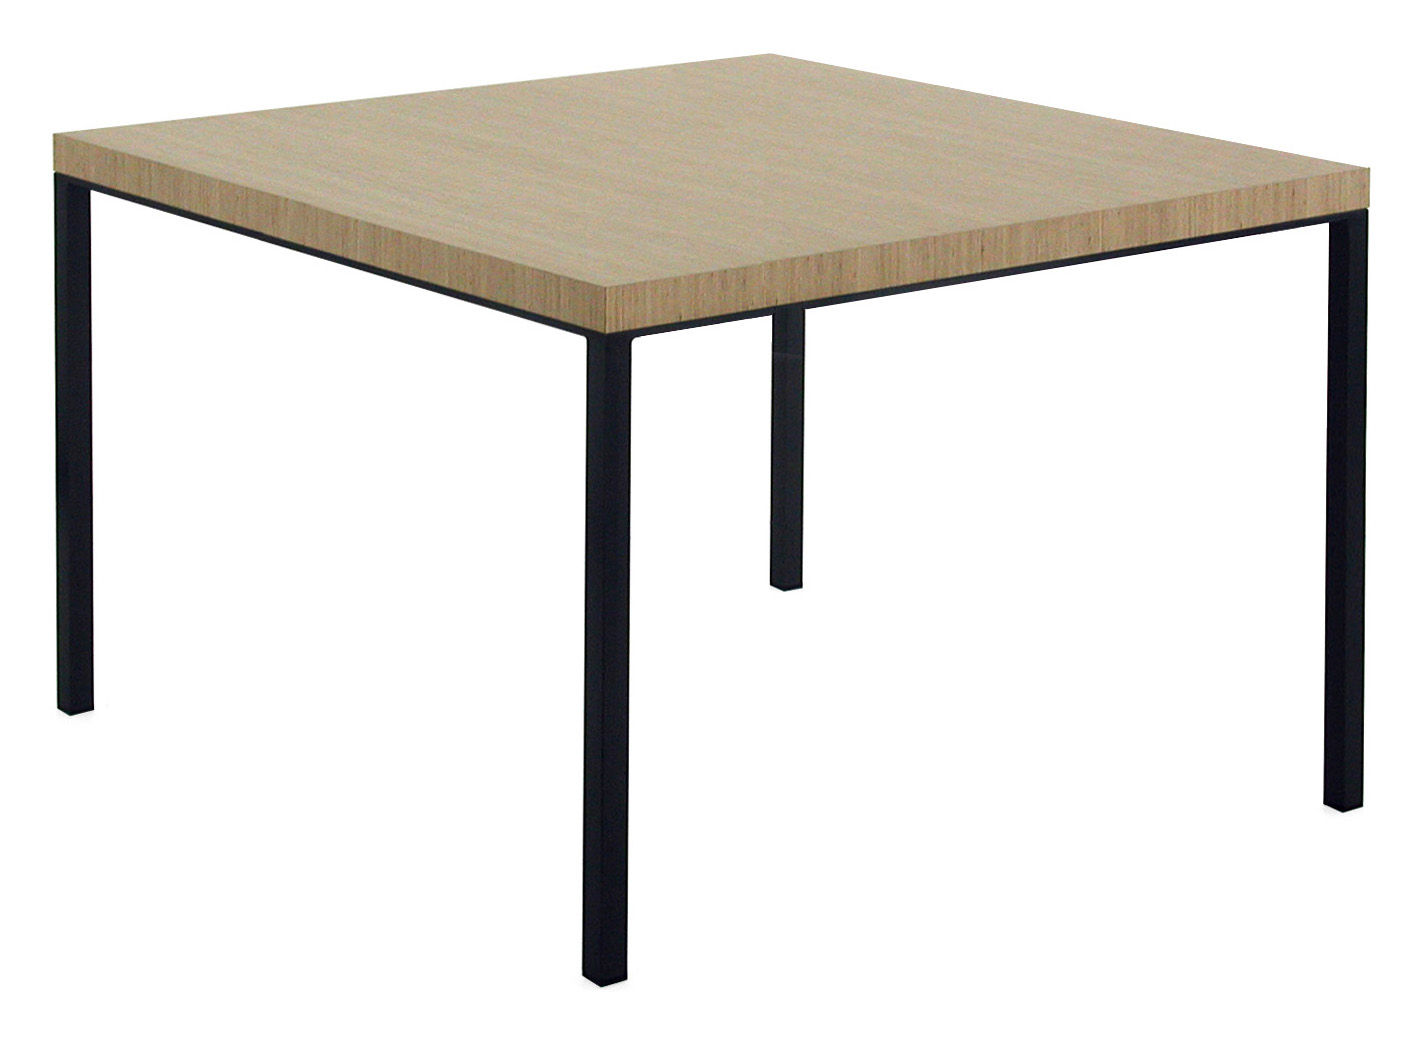 27ef06400bd15 ... Furniture - Dining Tables - Big Brother Square table - Square by Zeus -  Copper black